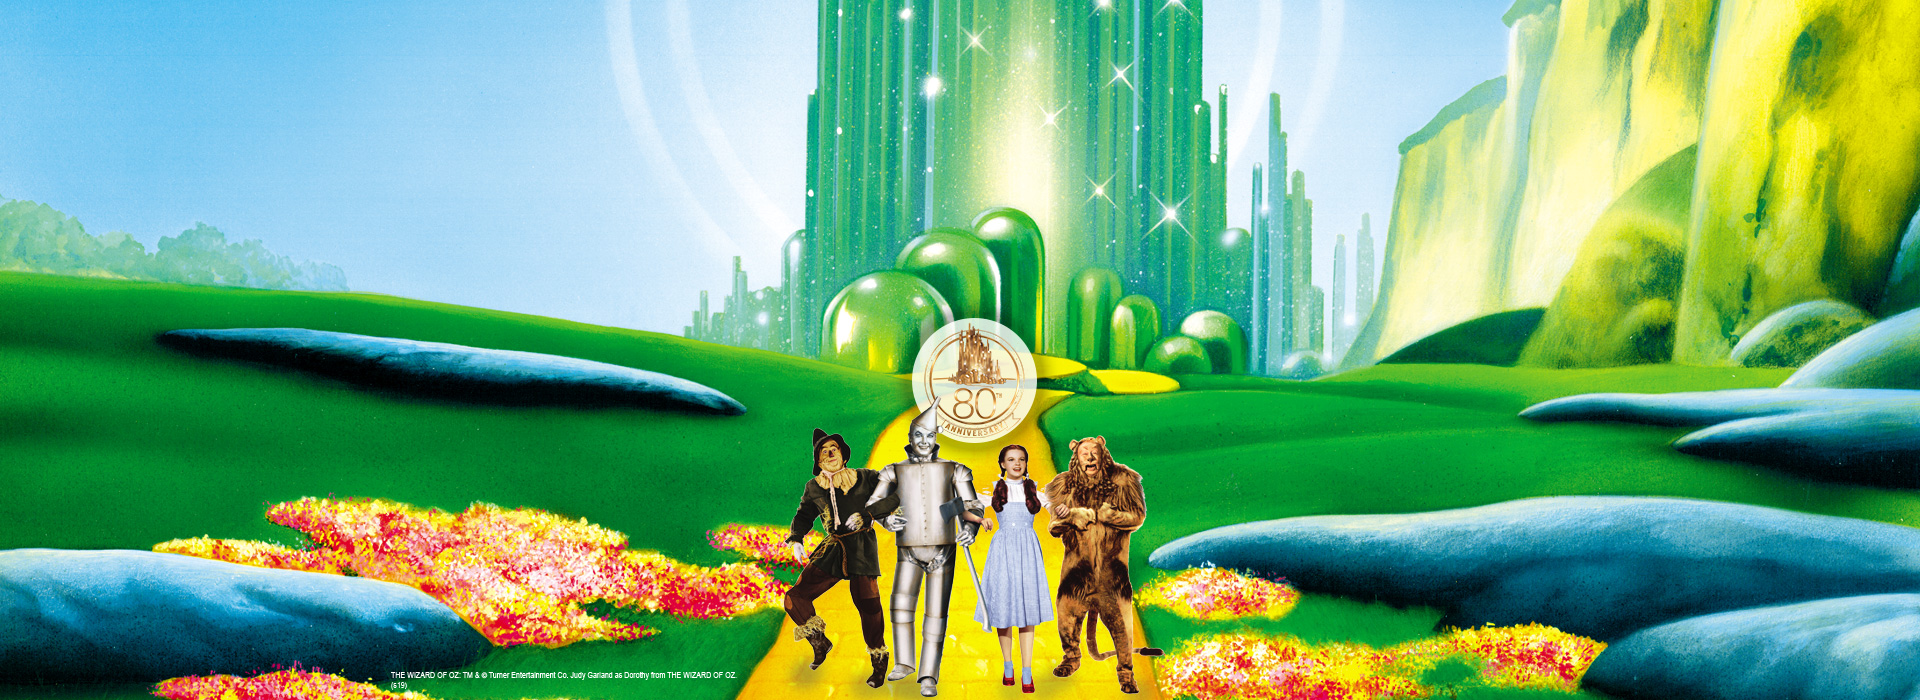 Wizatd of OZ